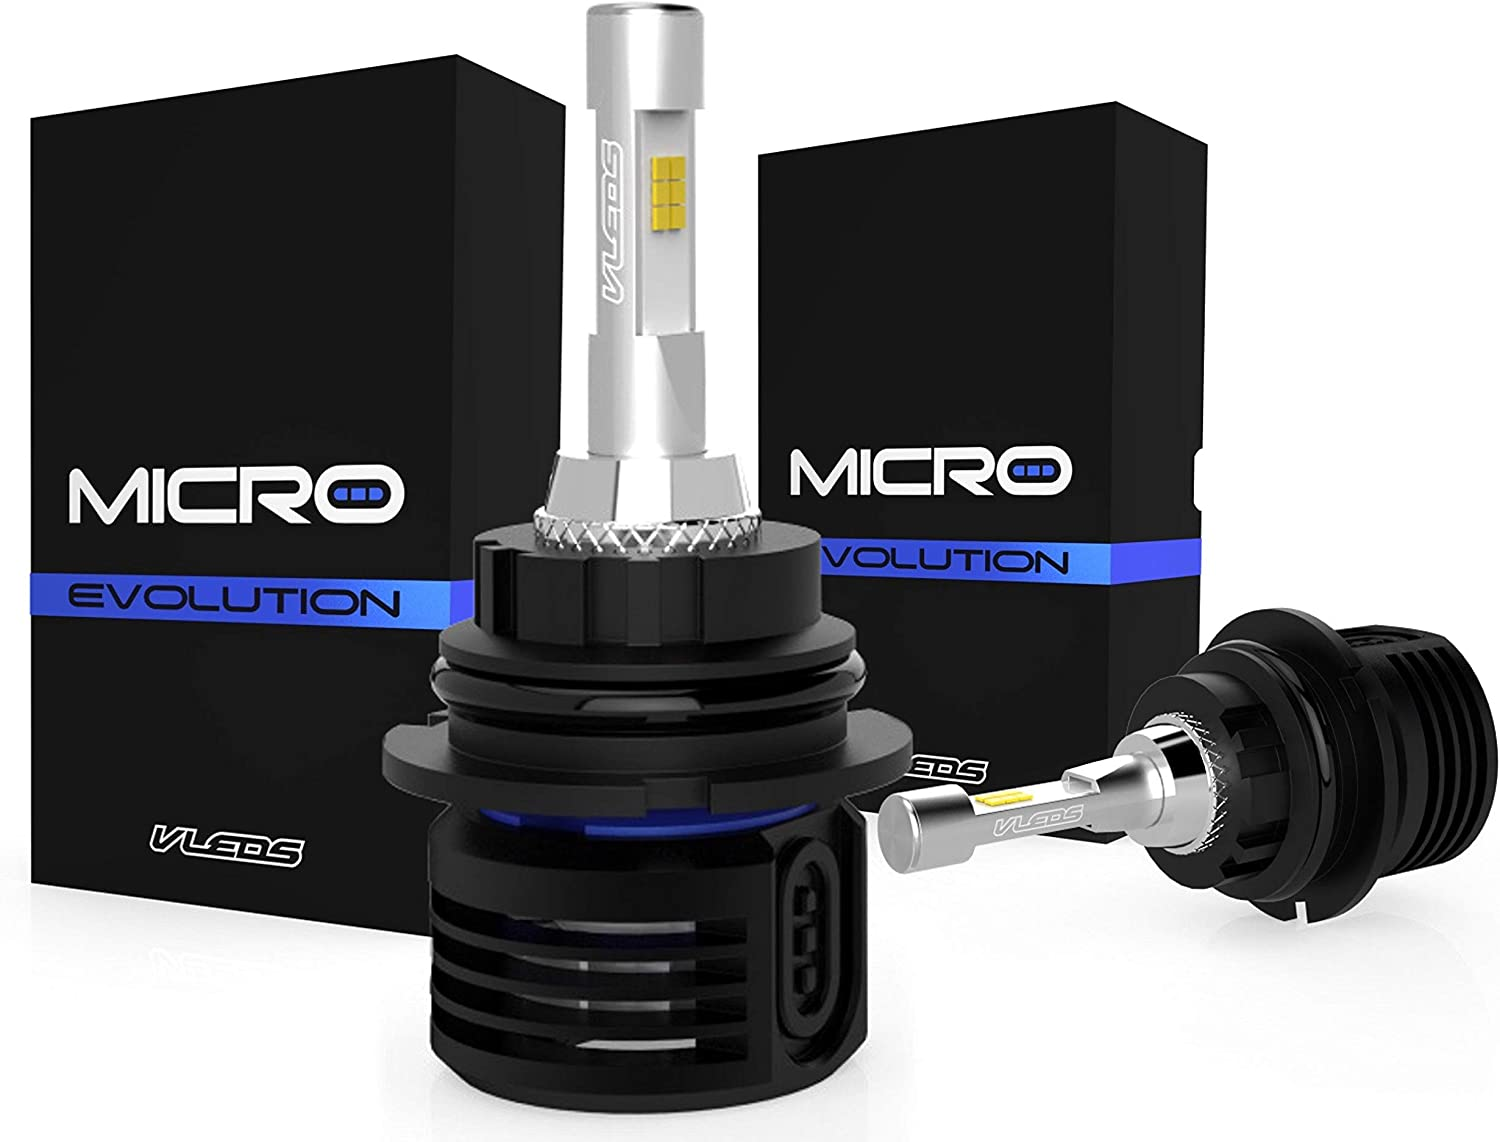 VLEDS 3500lm 6000K White Micro Evolution Low Headlights LED High Ranking TOP16 Los Angeles Mall